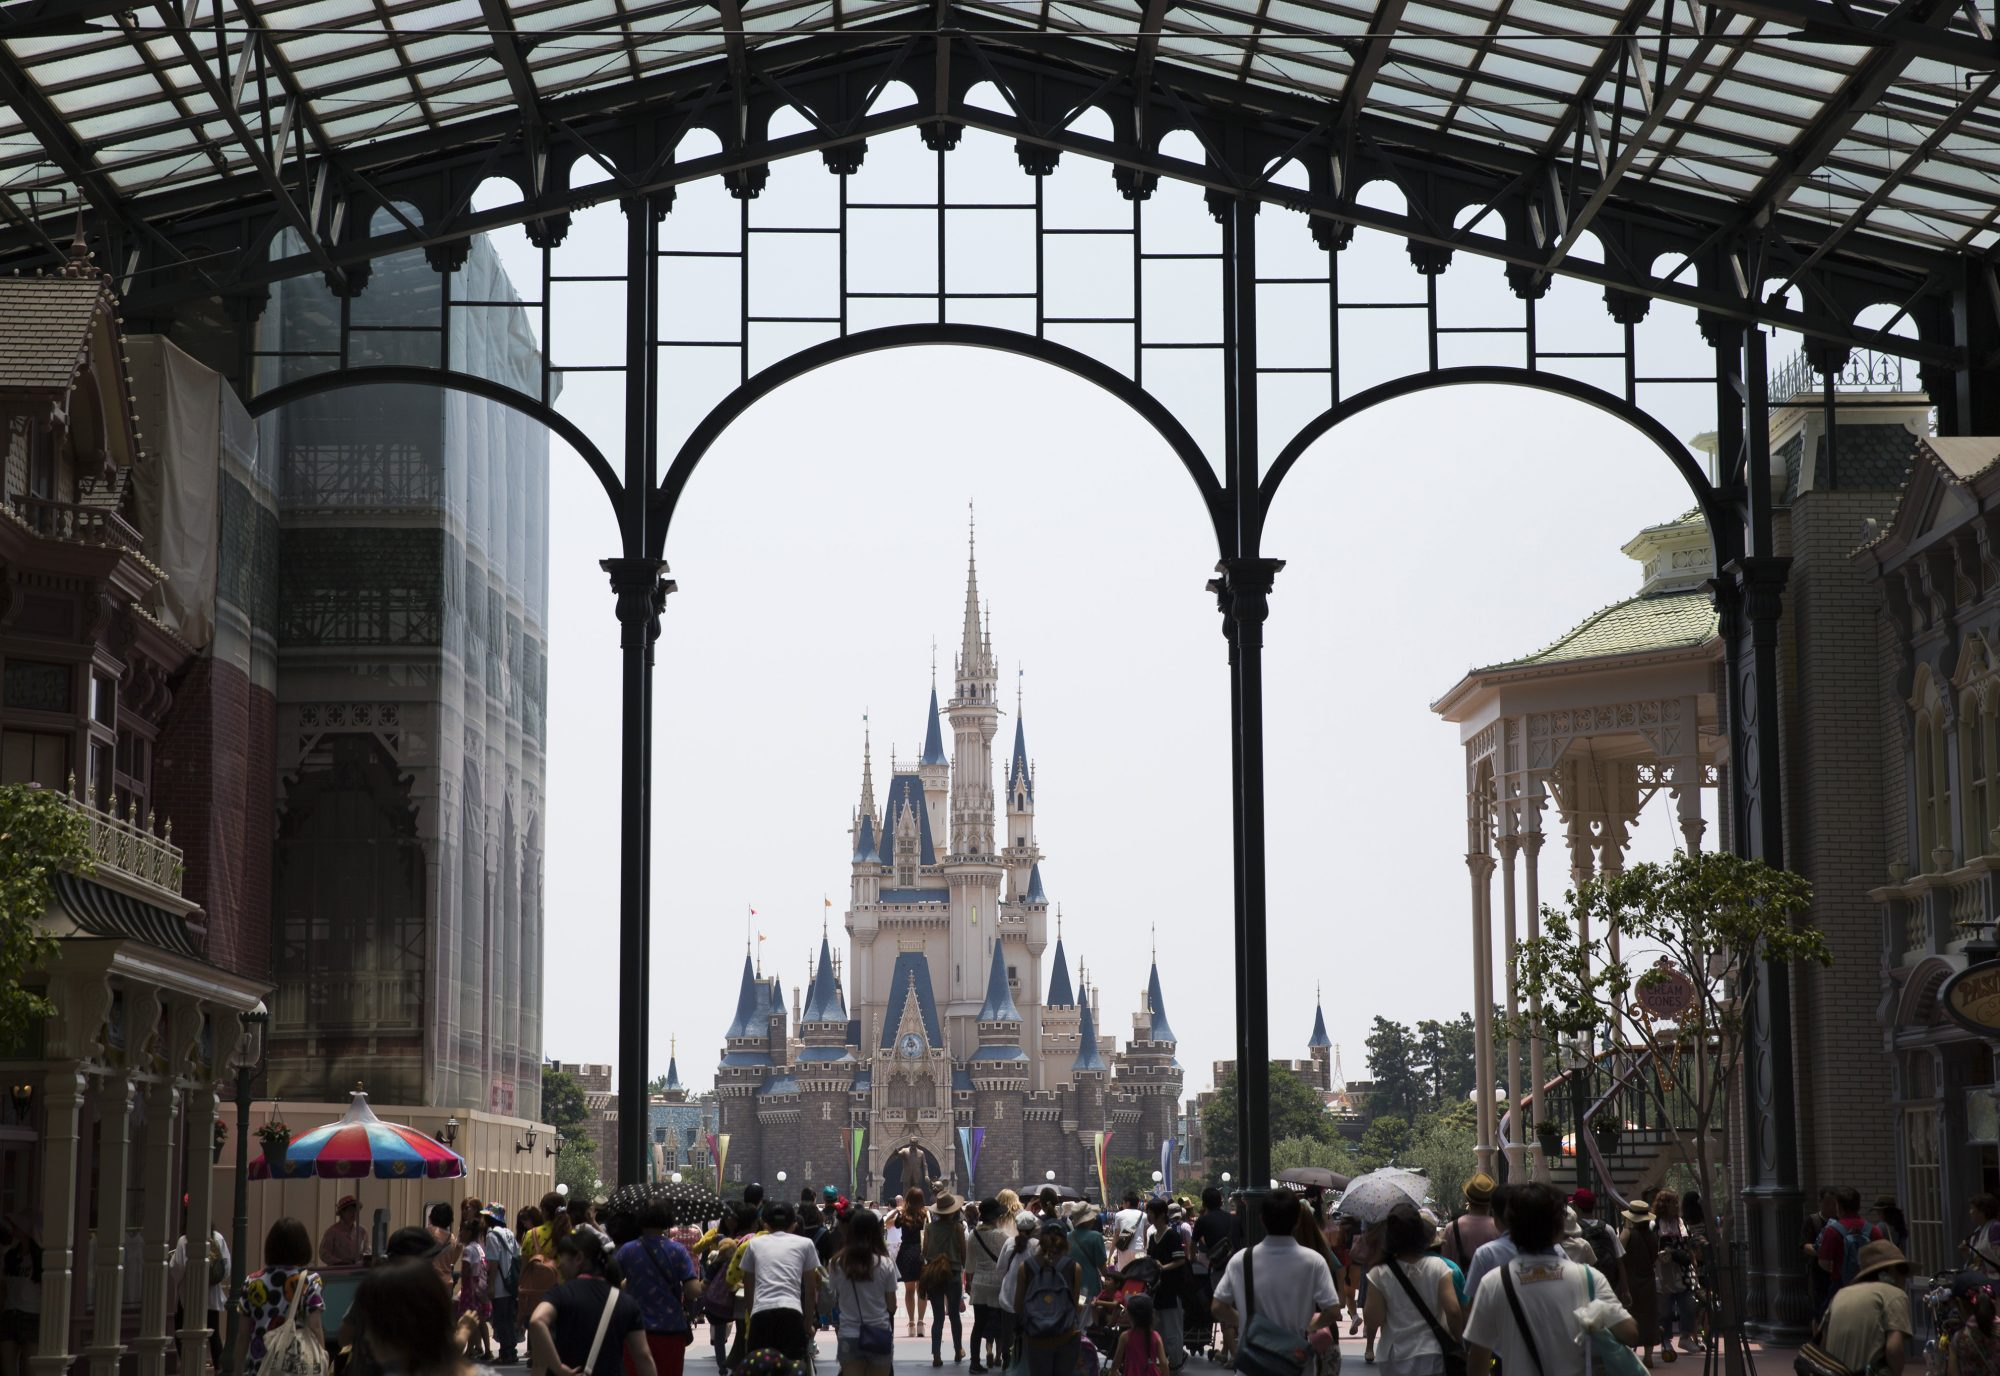 Tokyo Disneyland Looks Absolutely Magical Covered in Snow — See the Photos